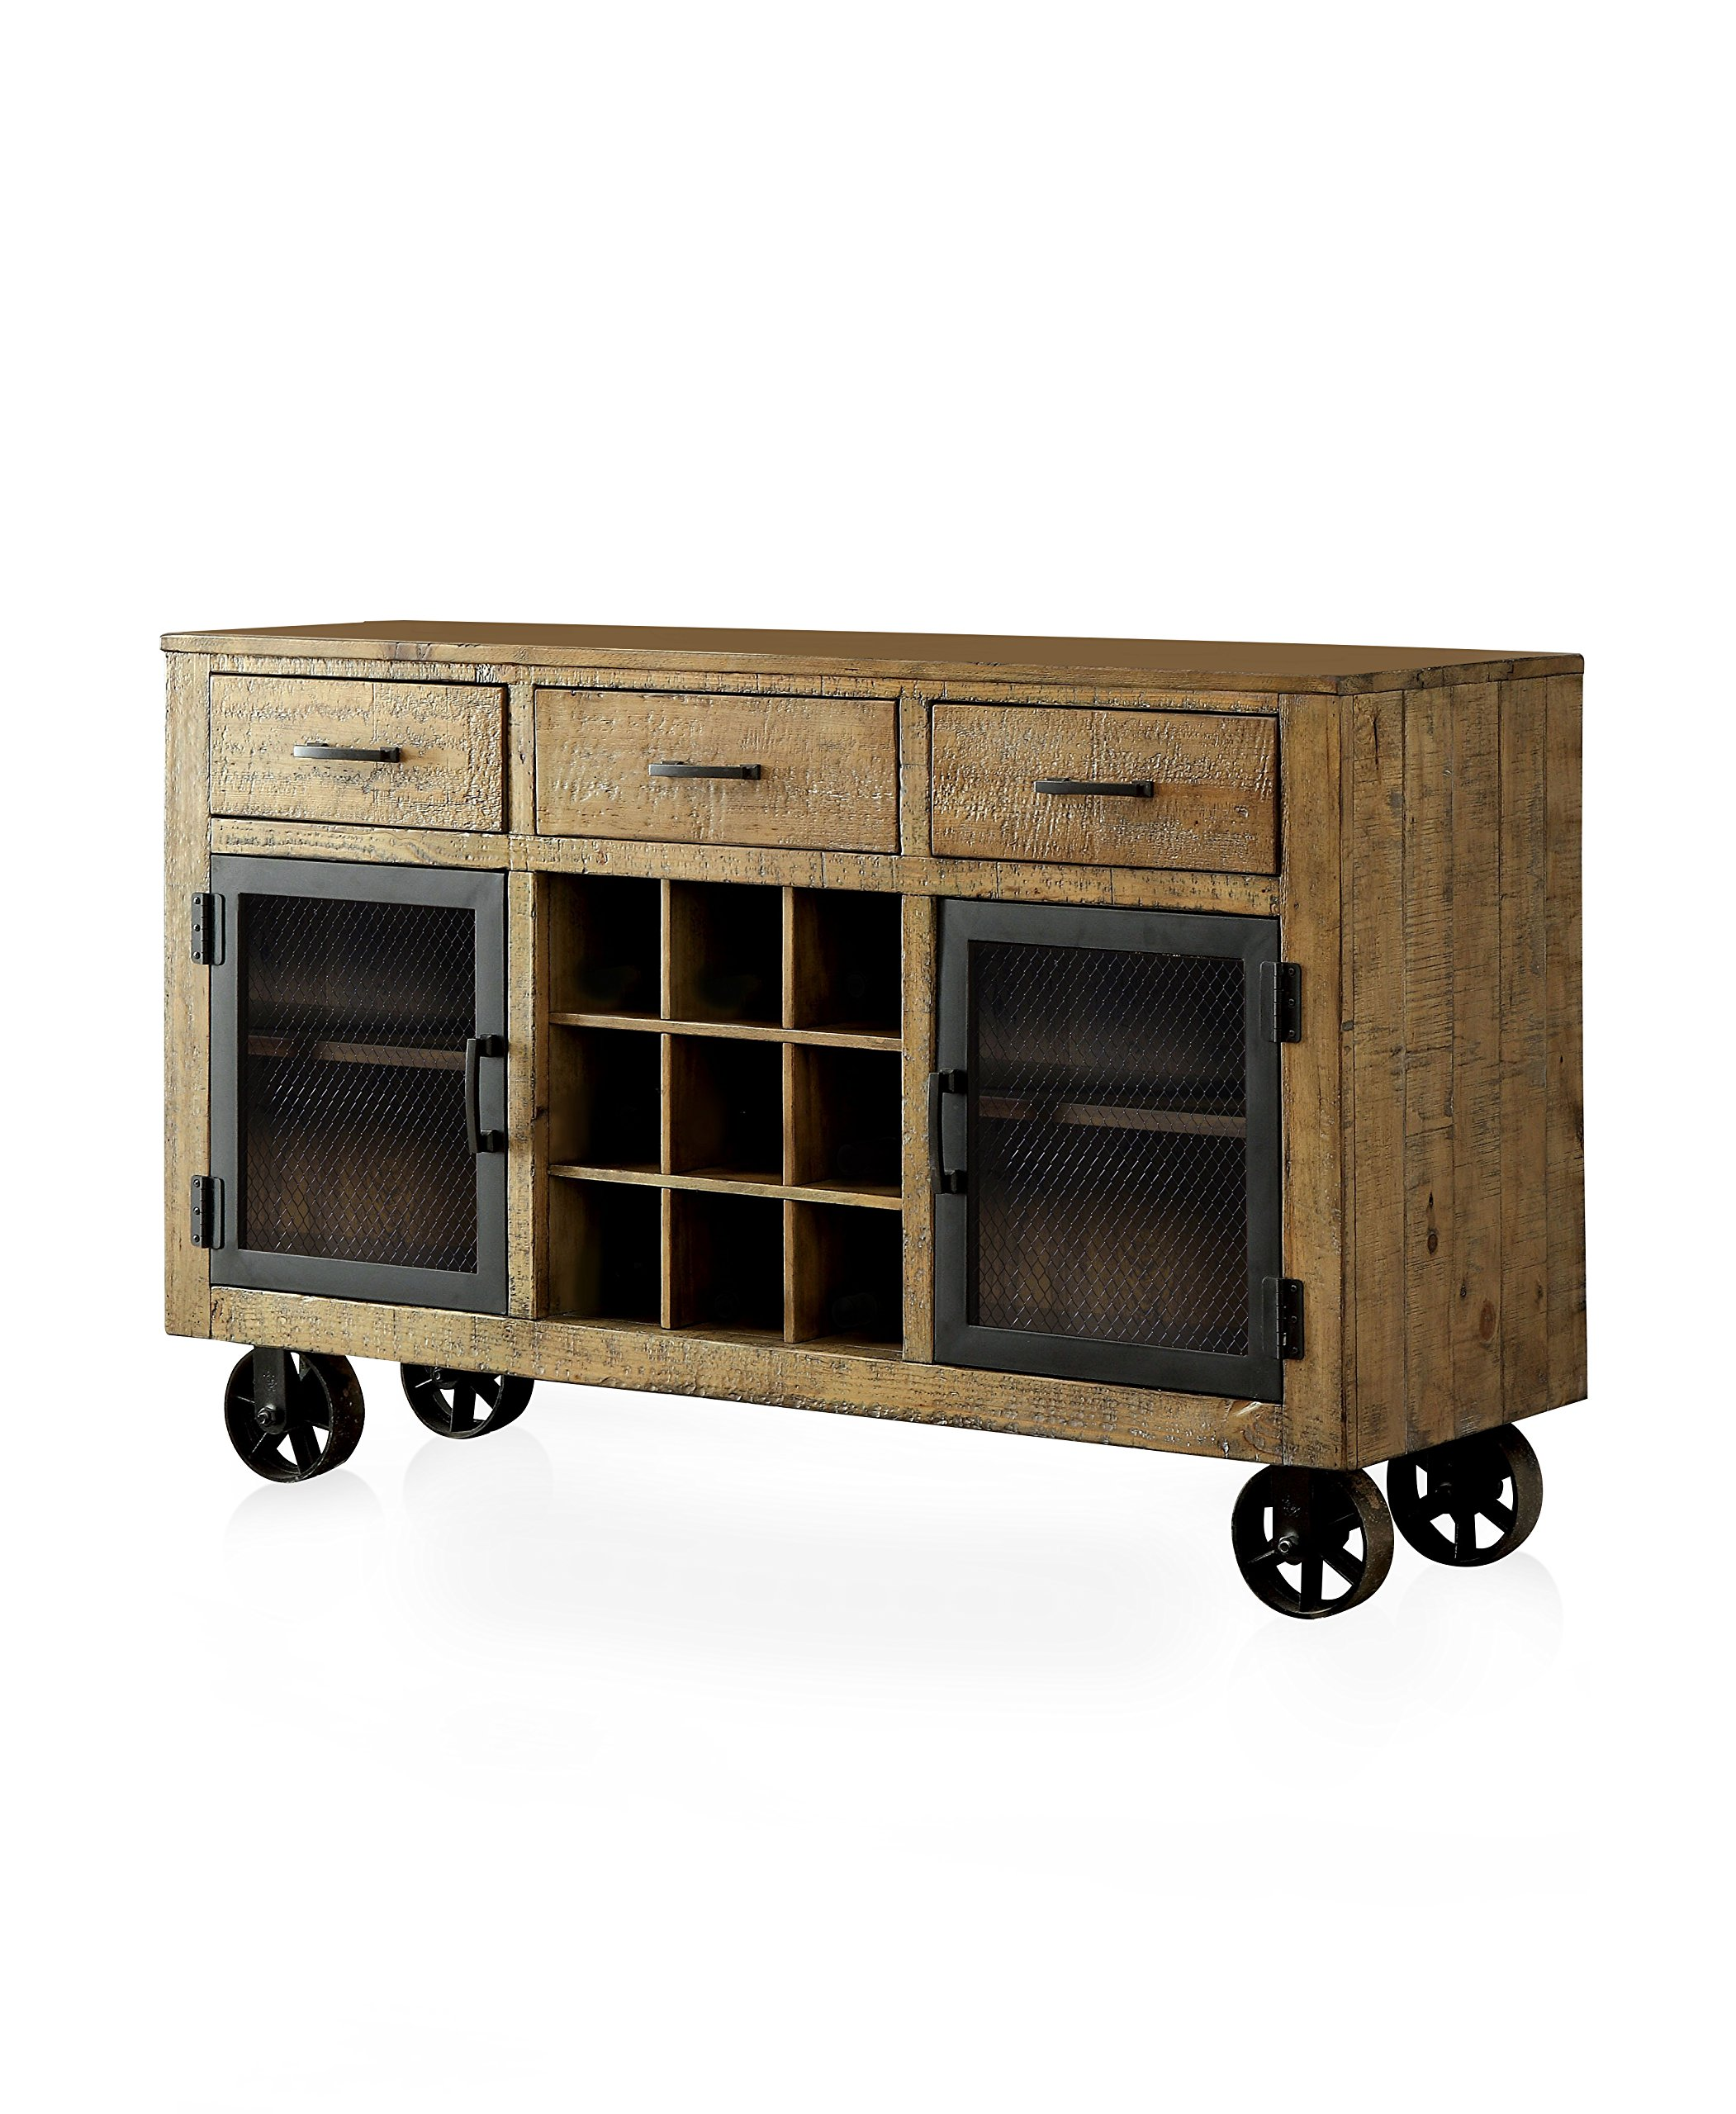 HOMES: Inside + Out ioHOMES Burton Industrial Style Rustic Pin Server, Rustic Pine